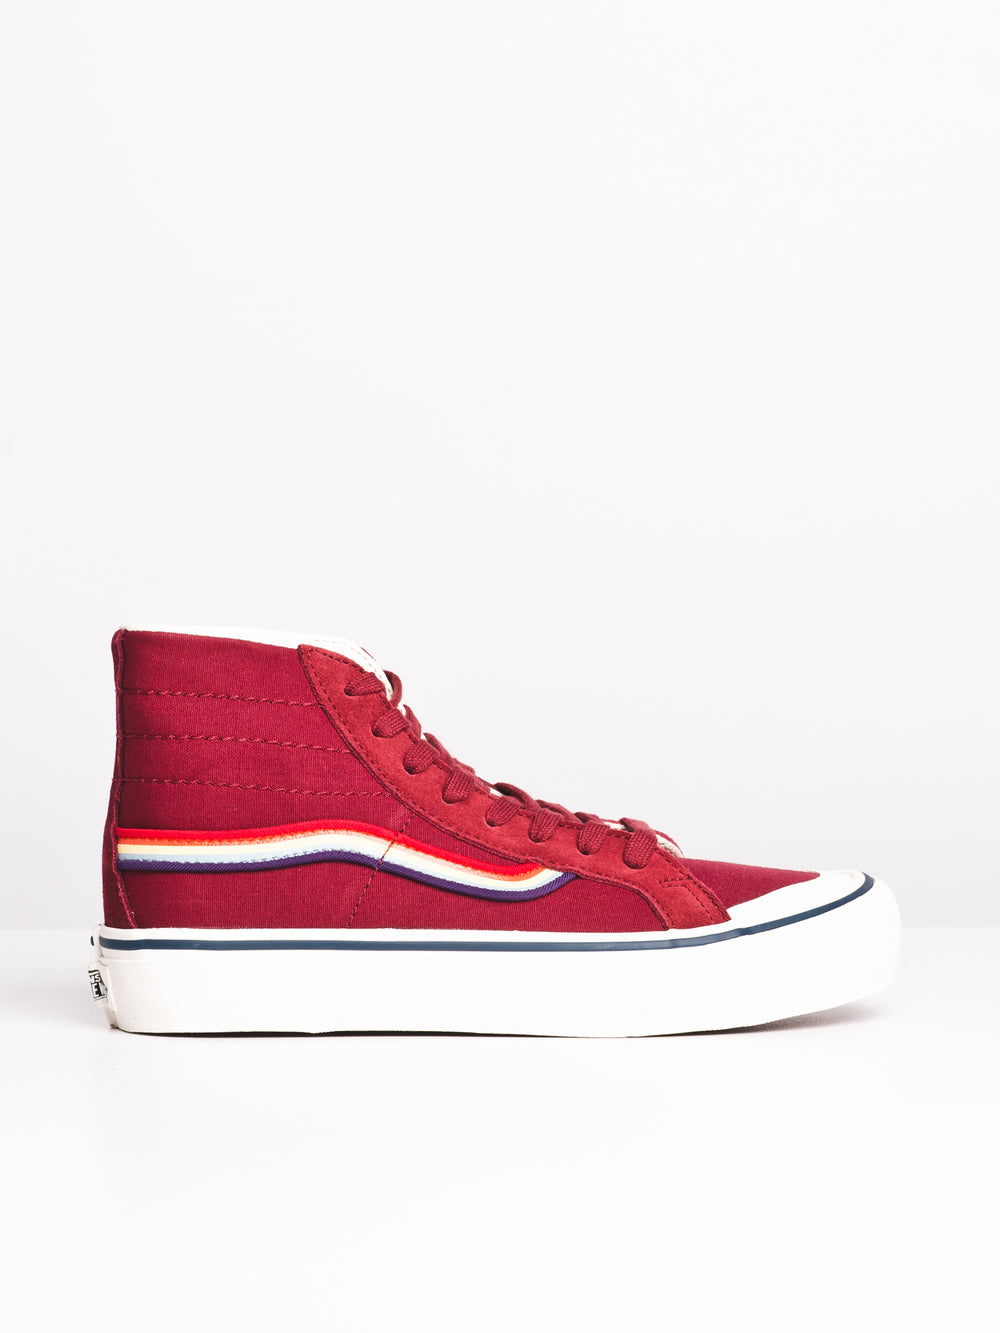 WOMENS SK8 HI 138 DECON SF - RAD RNB